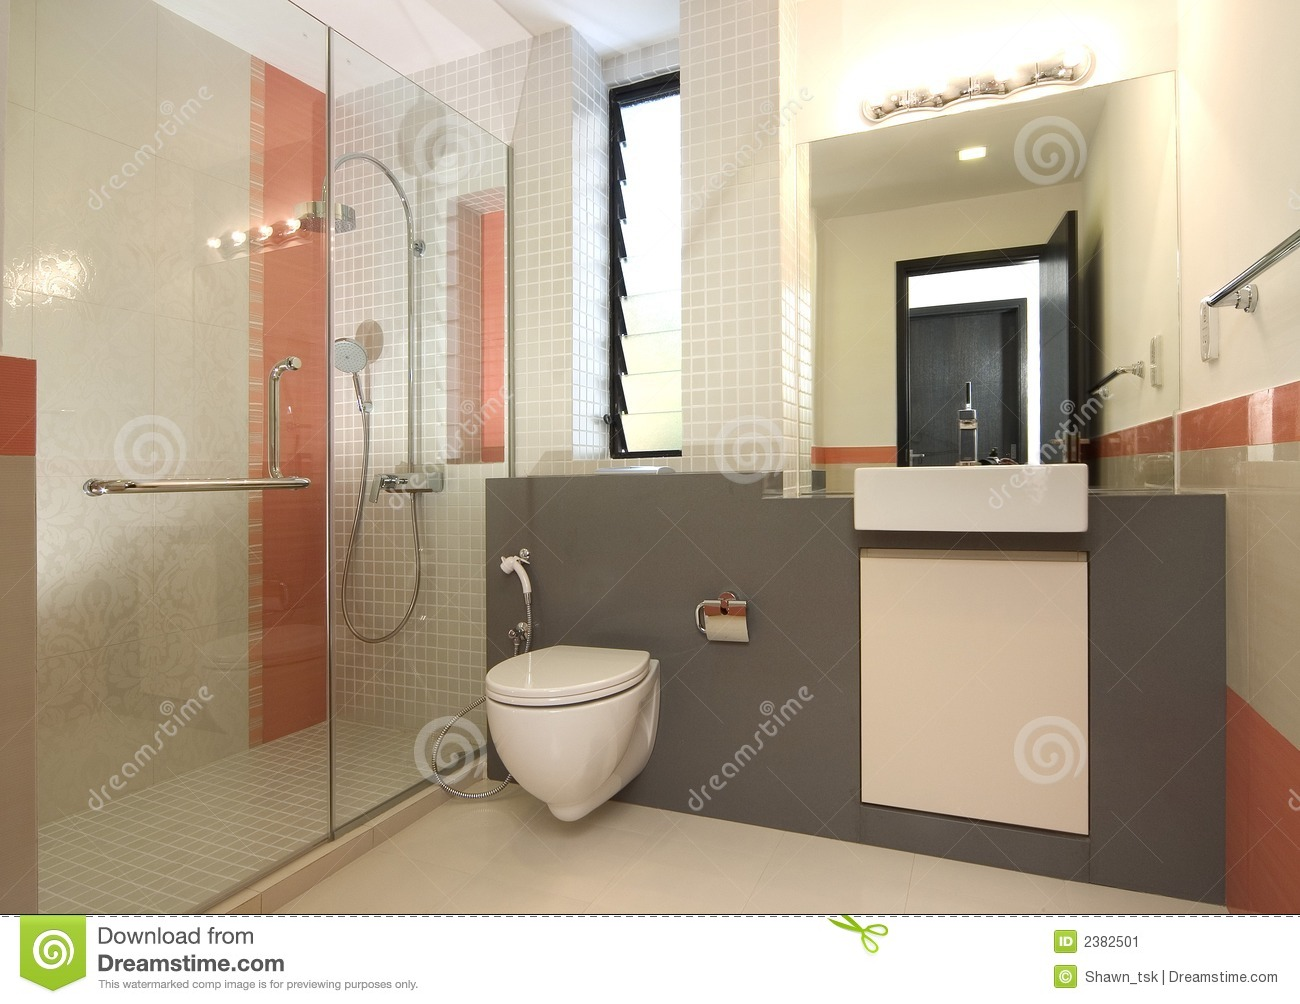 Innenarchitektur Badezimmer Interior Design Bathroom Stock Image Image Of Light